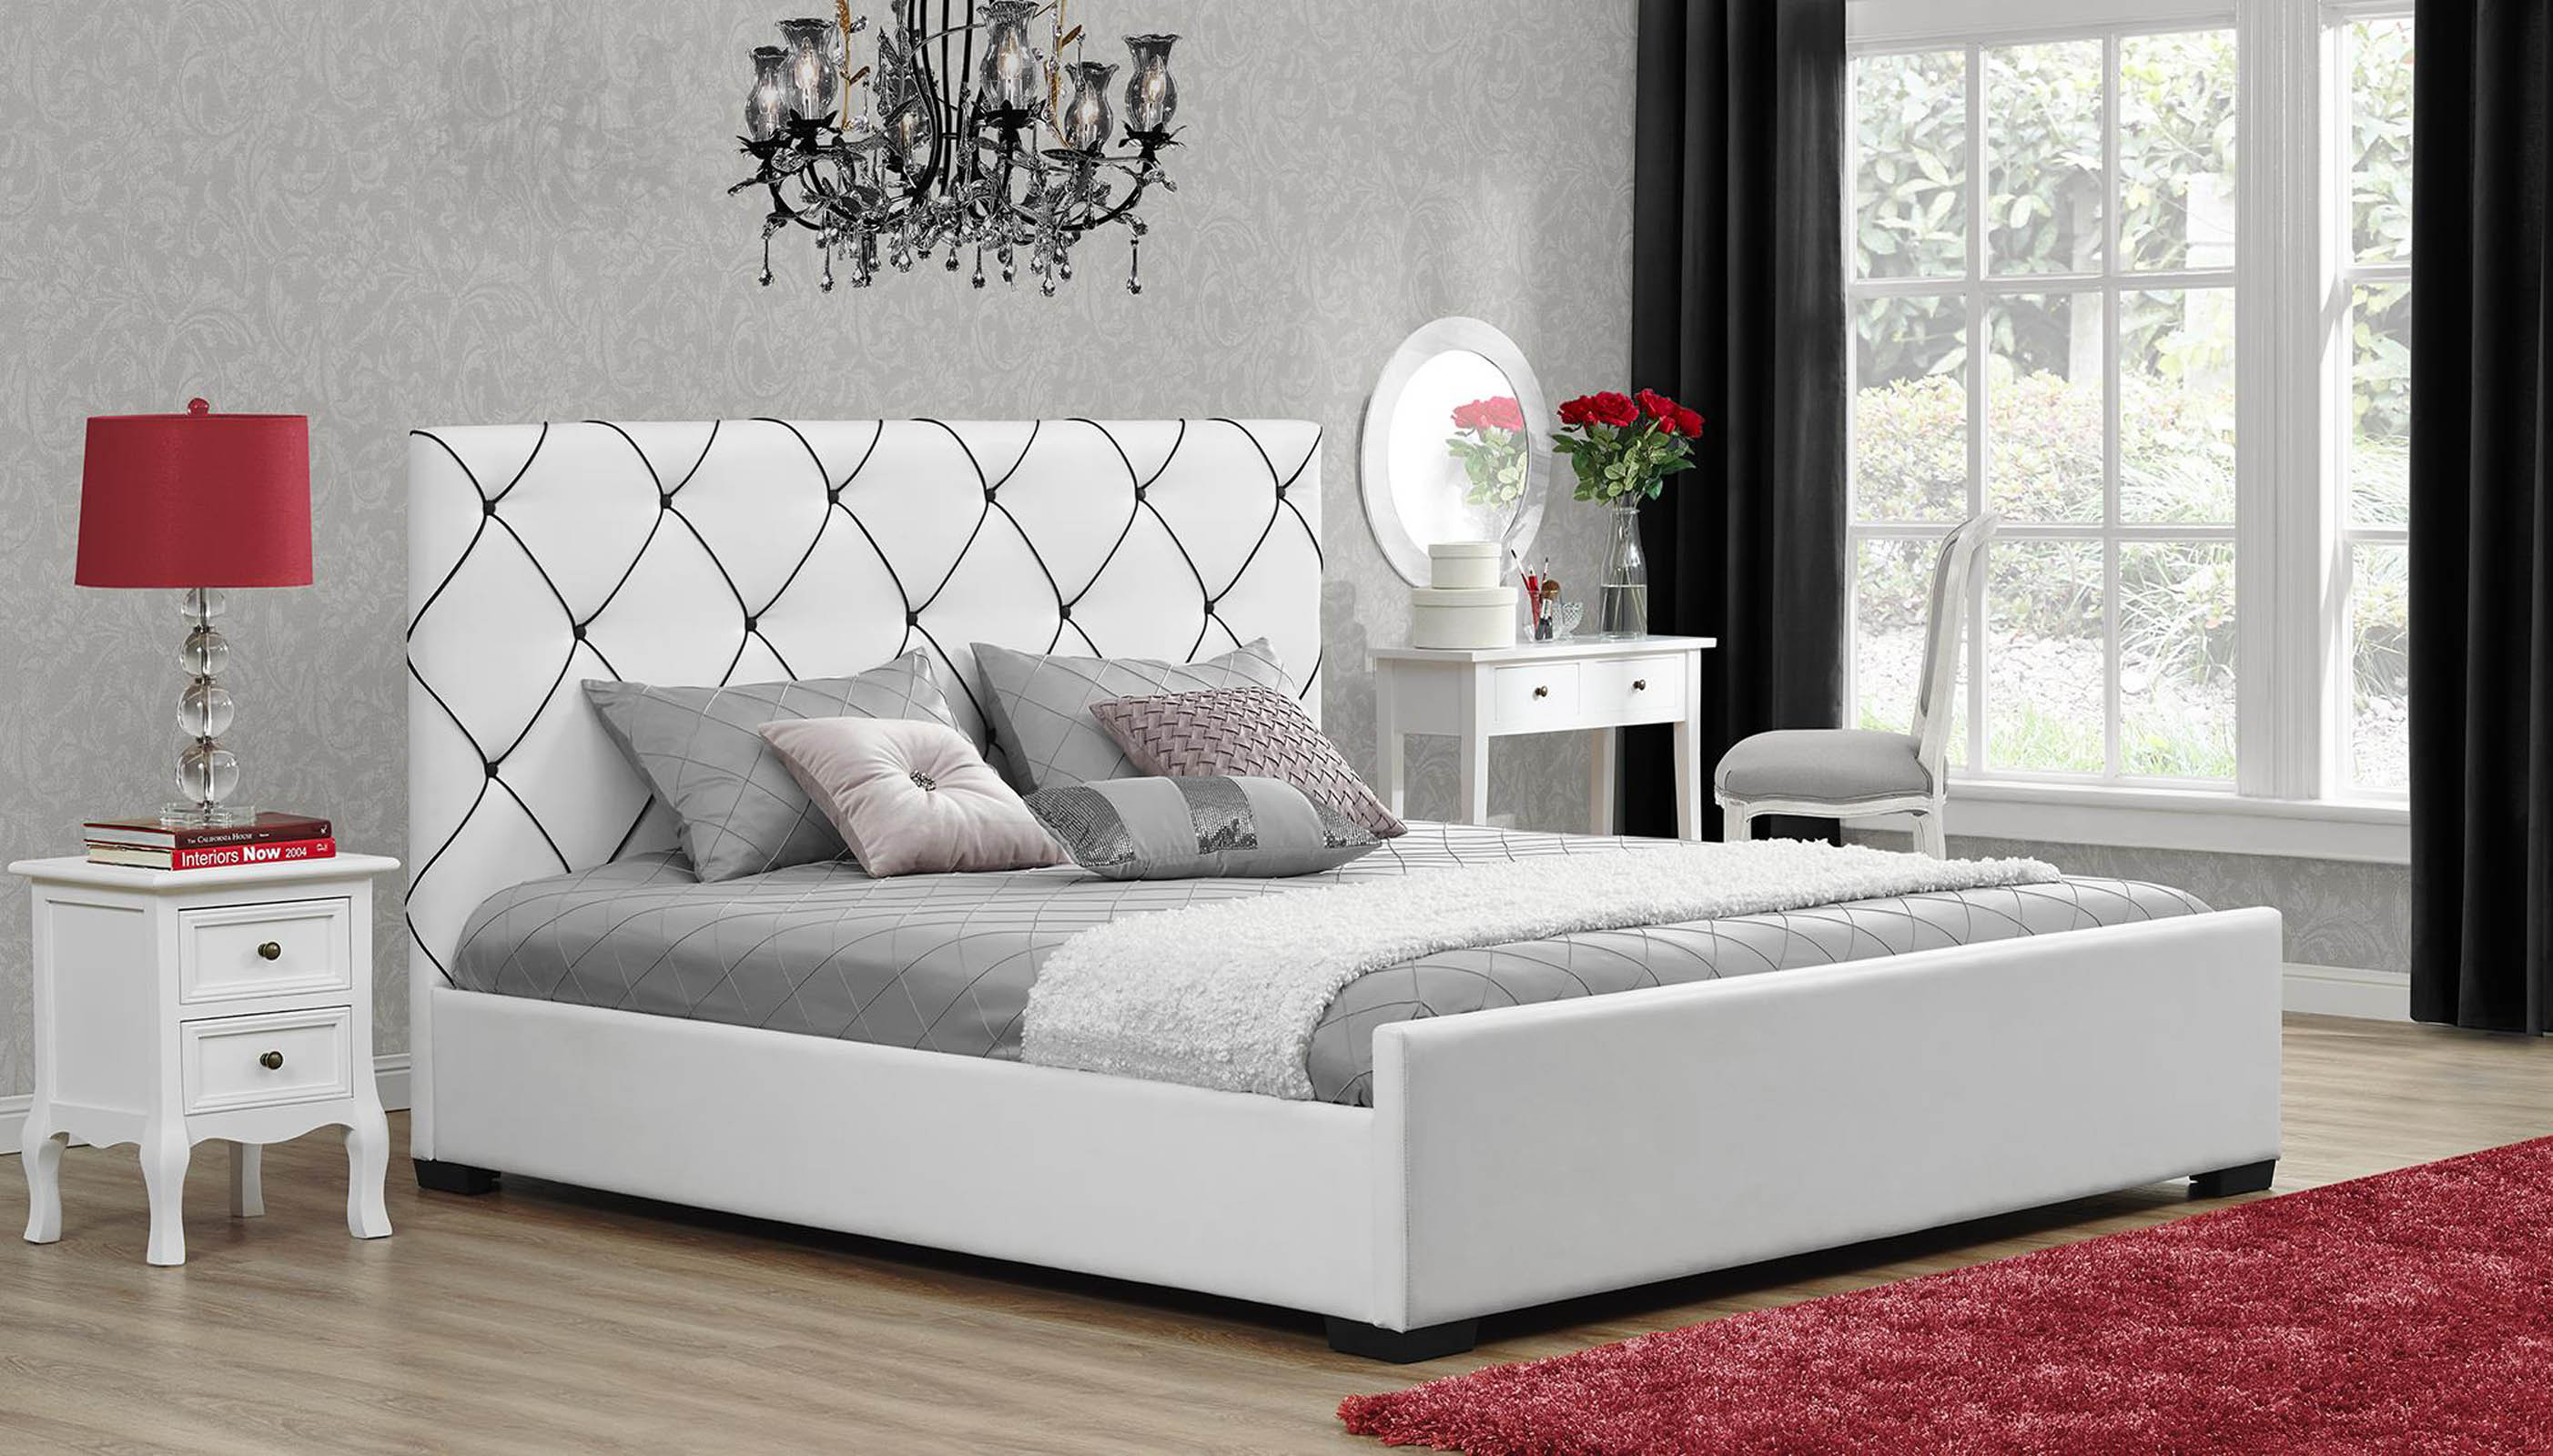 gorgeous ideas footboard bed with of hollywood panel white full and metal size designs headboard frame